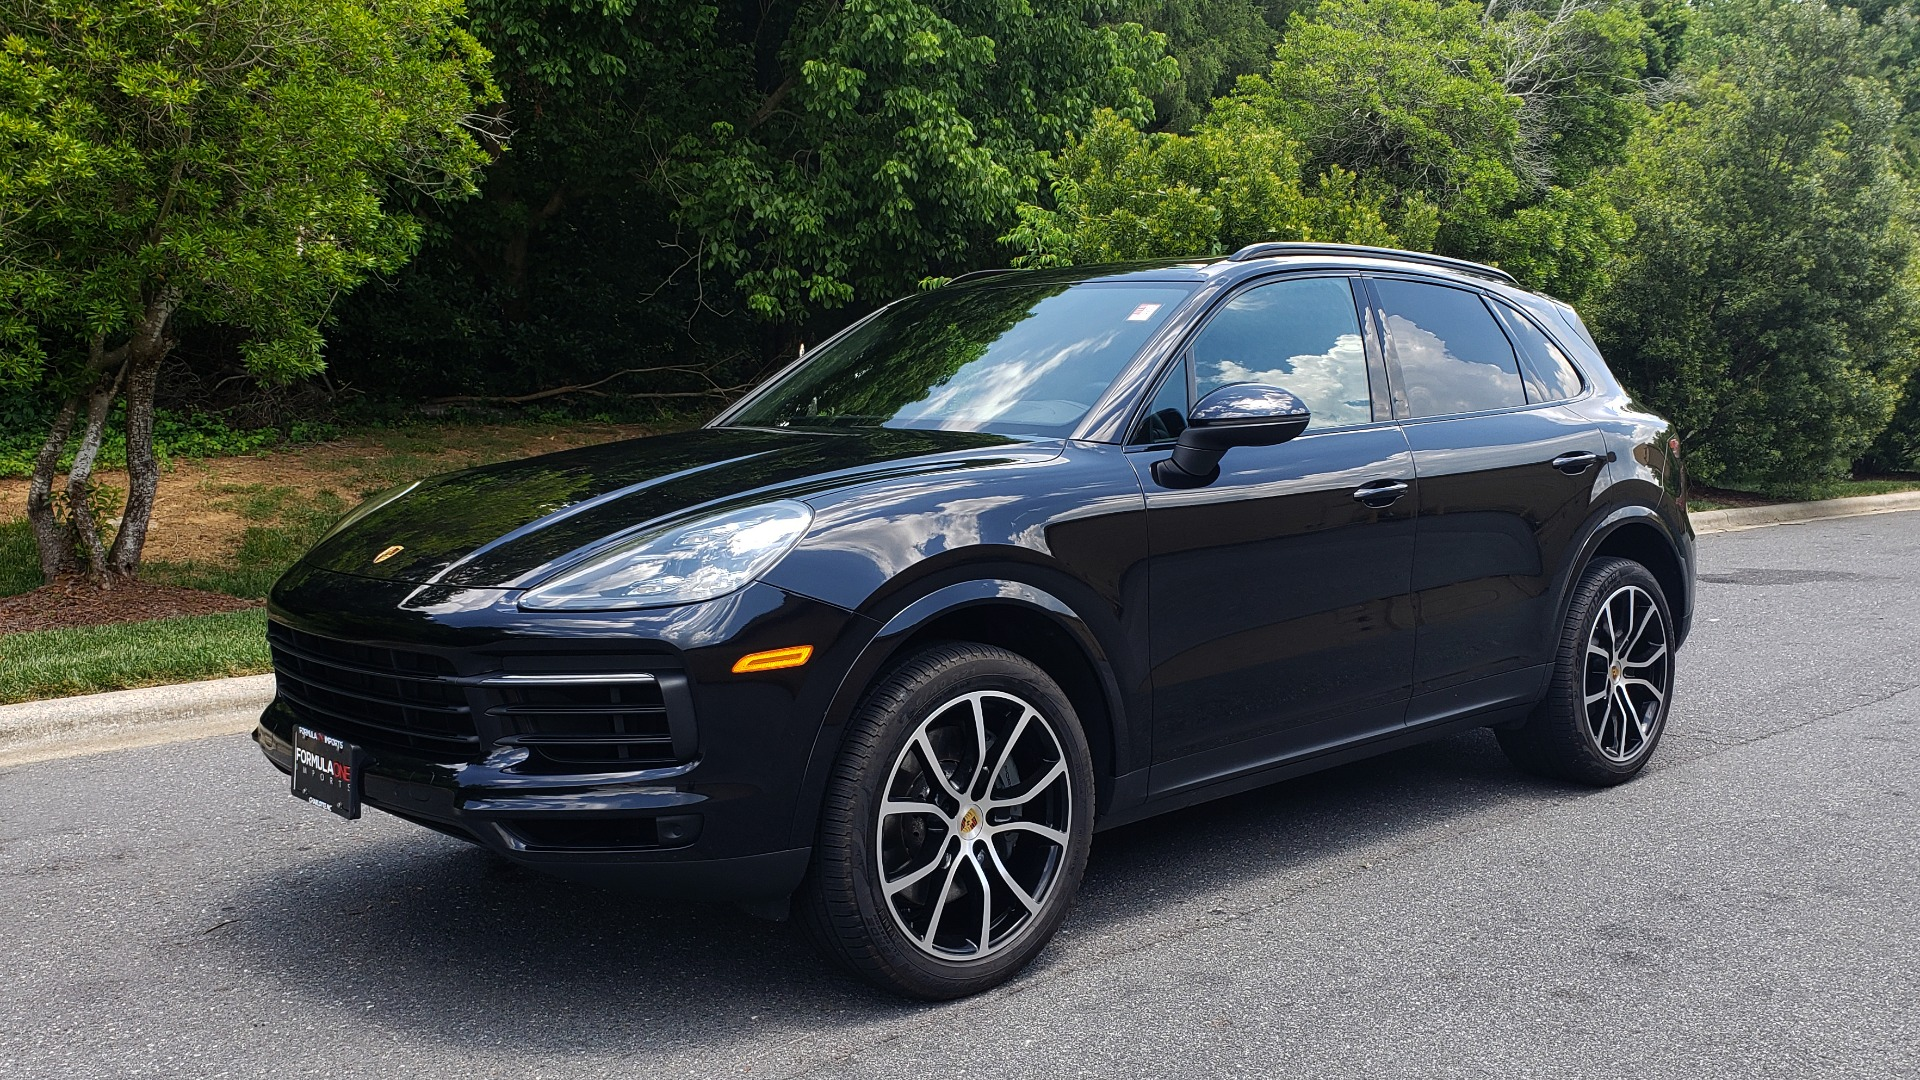 Used 2019 Porsche CAYENNE S AWD / NAV / SUNROOF / BOSE / REARVIEW / LOW MILES for sale Sold at Formula Imports in Charlotte NC 28227 1